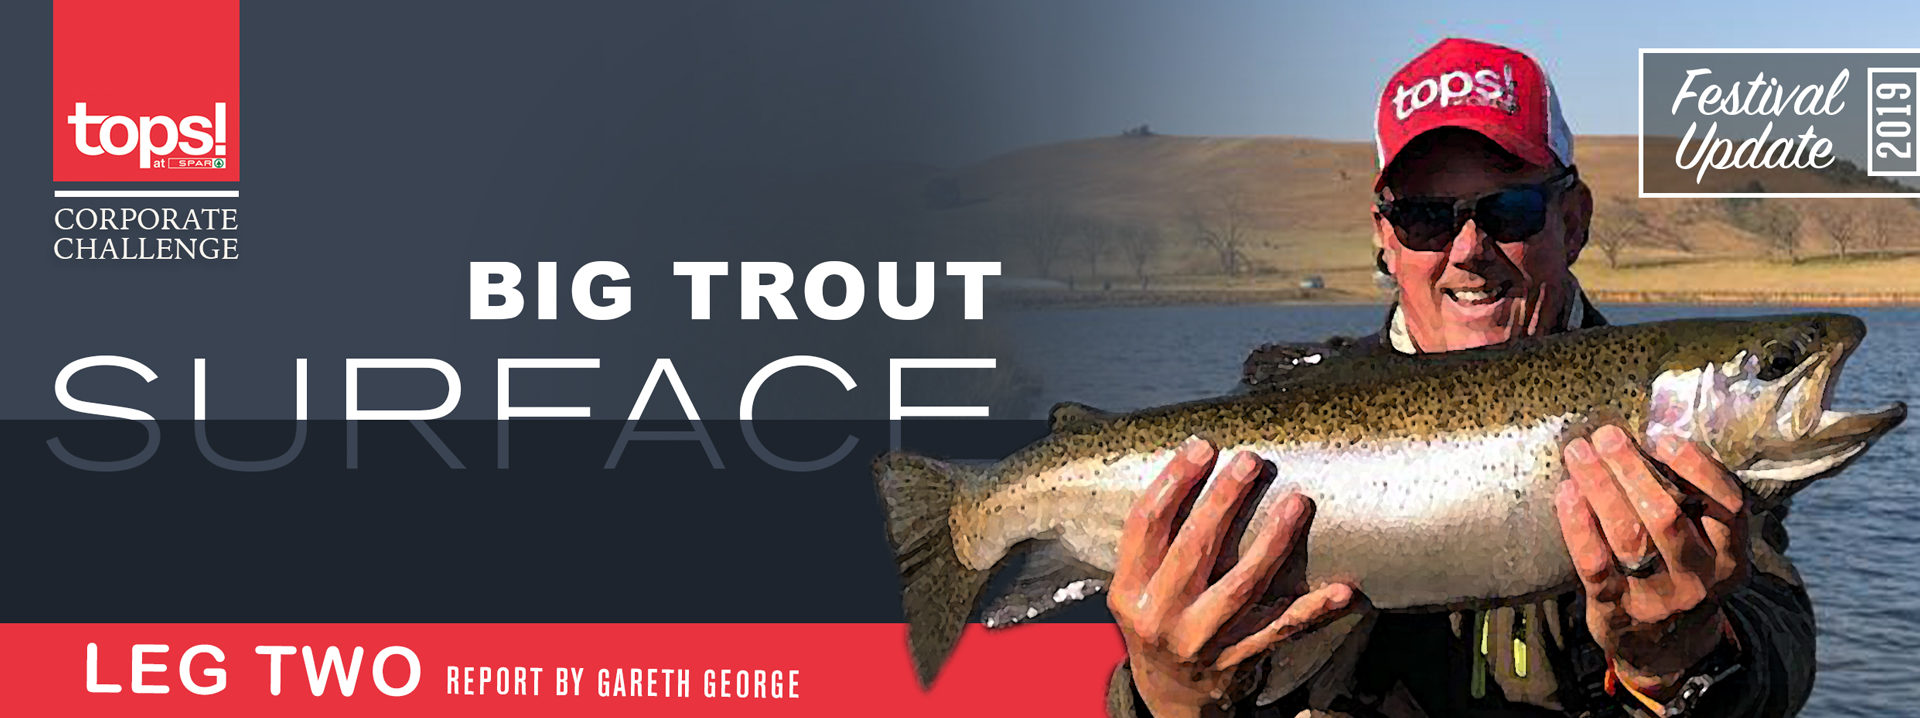 Big Trout surface – TOPS Corporate challenge leg 2